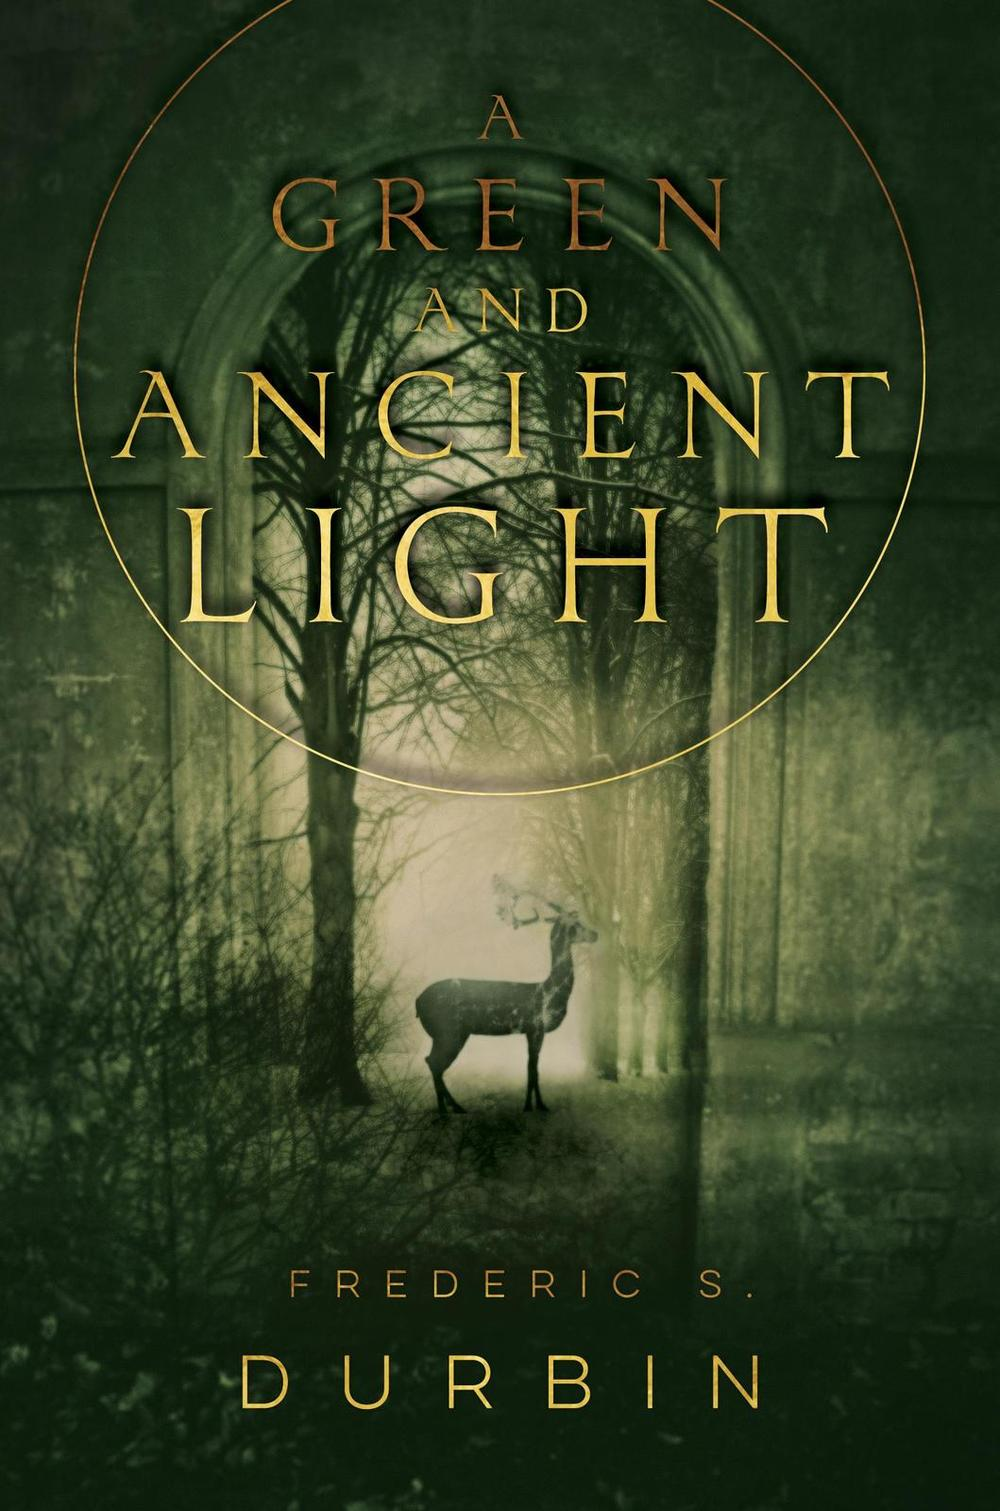 A-Green-and-Ancient-Light.jpg